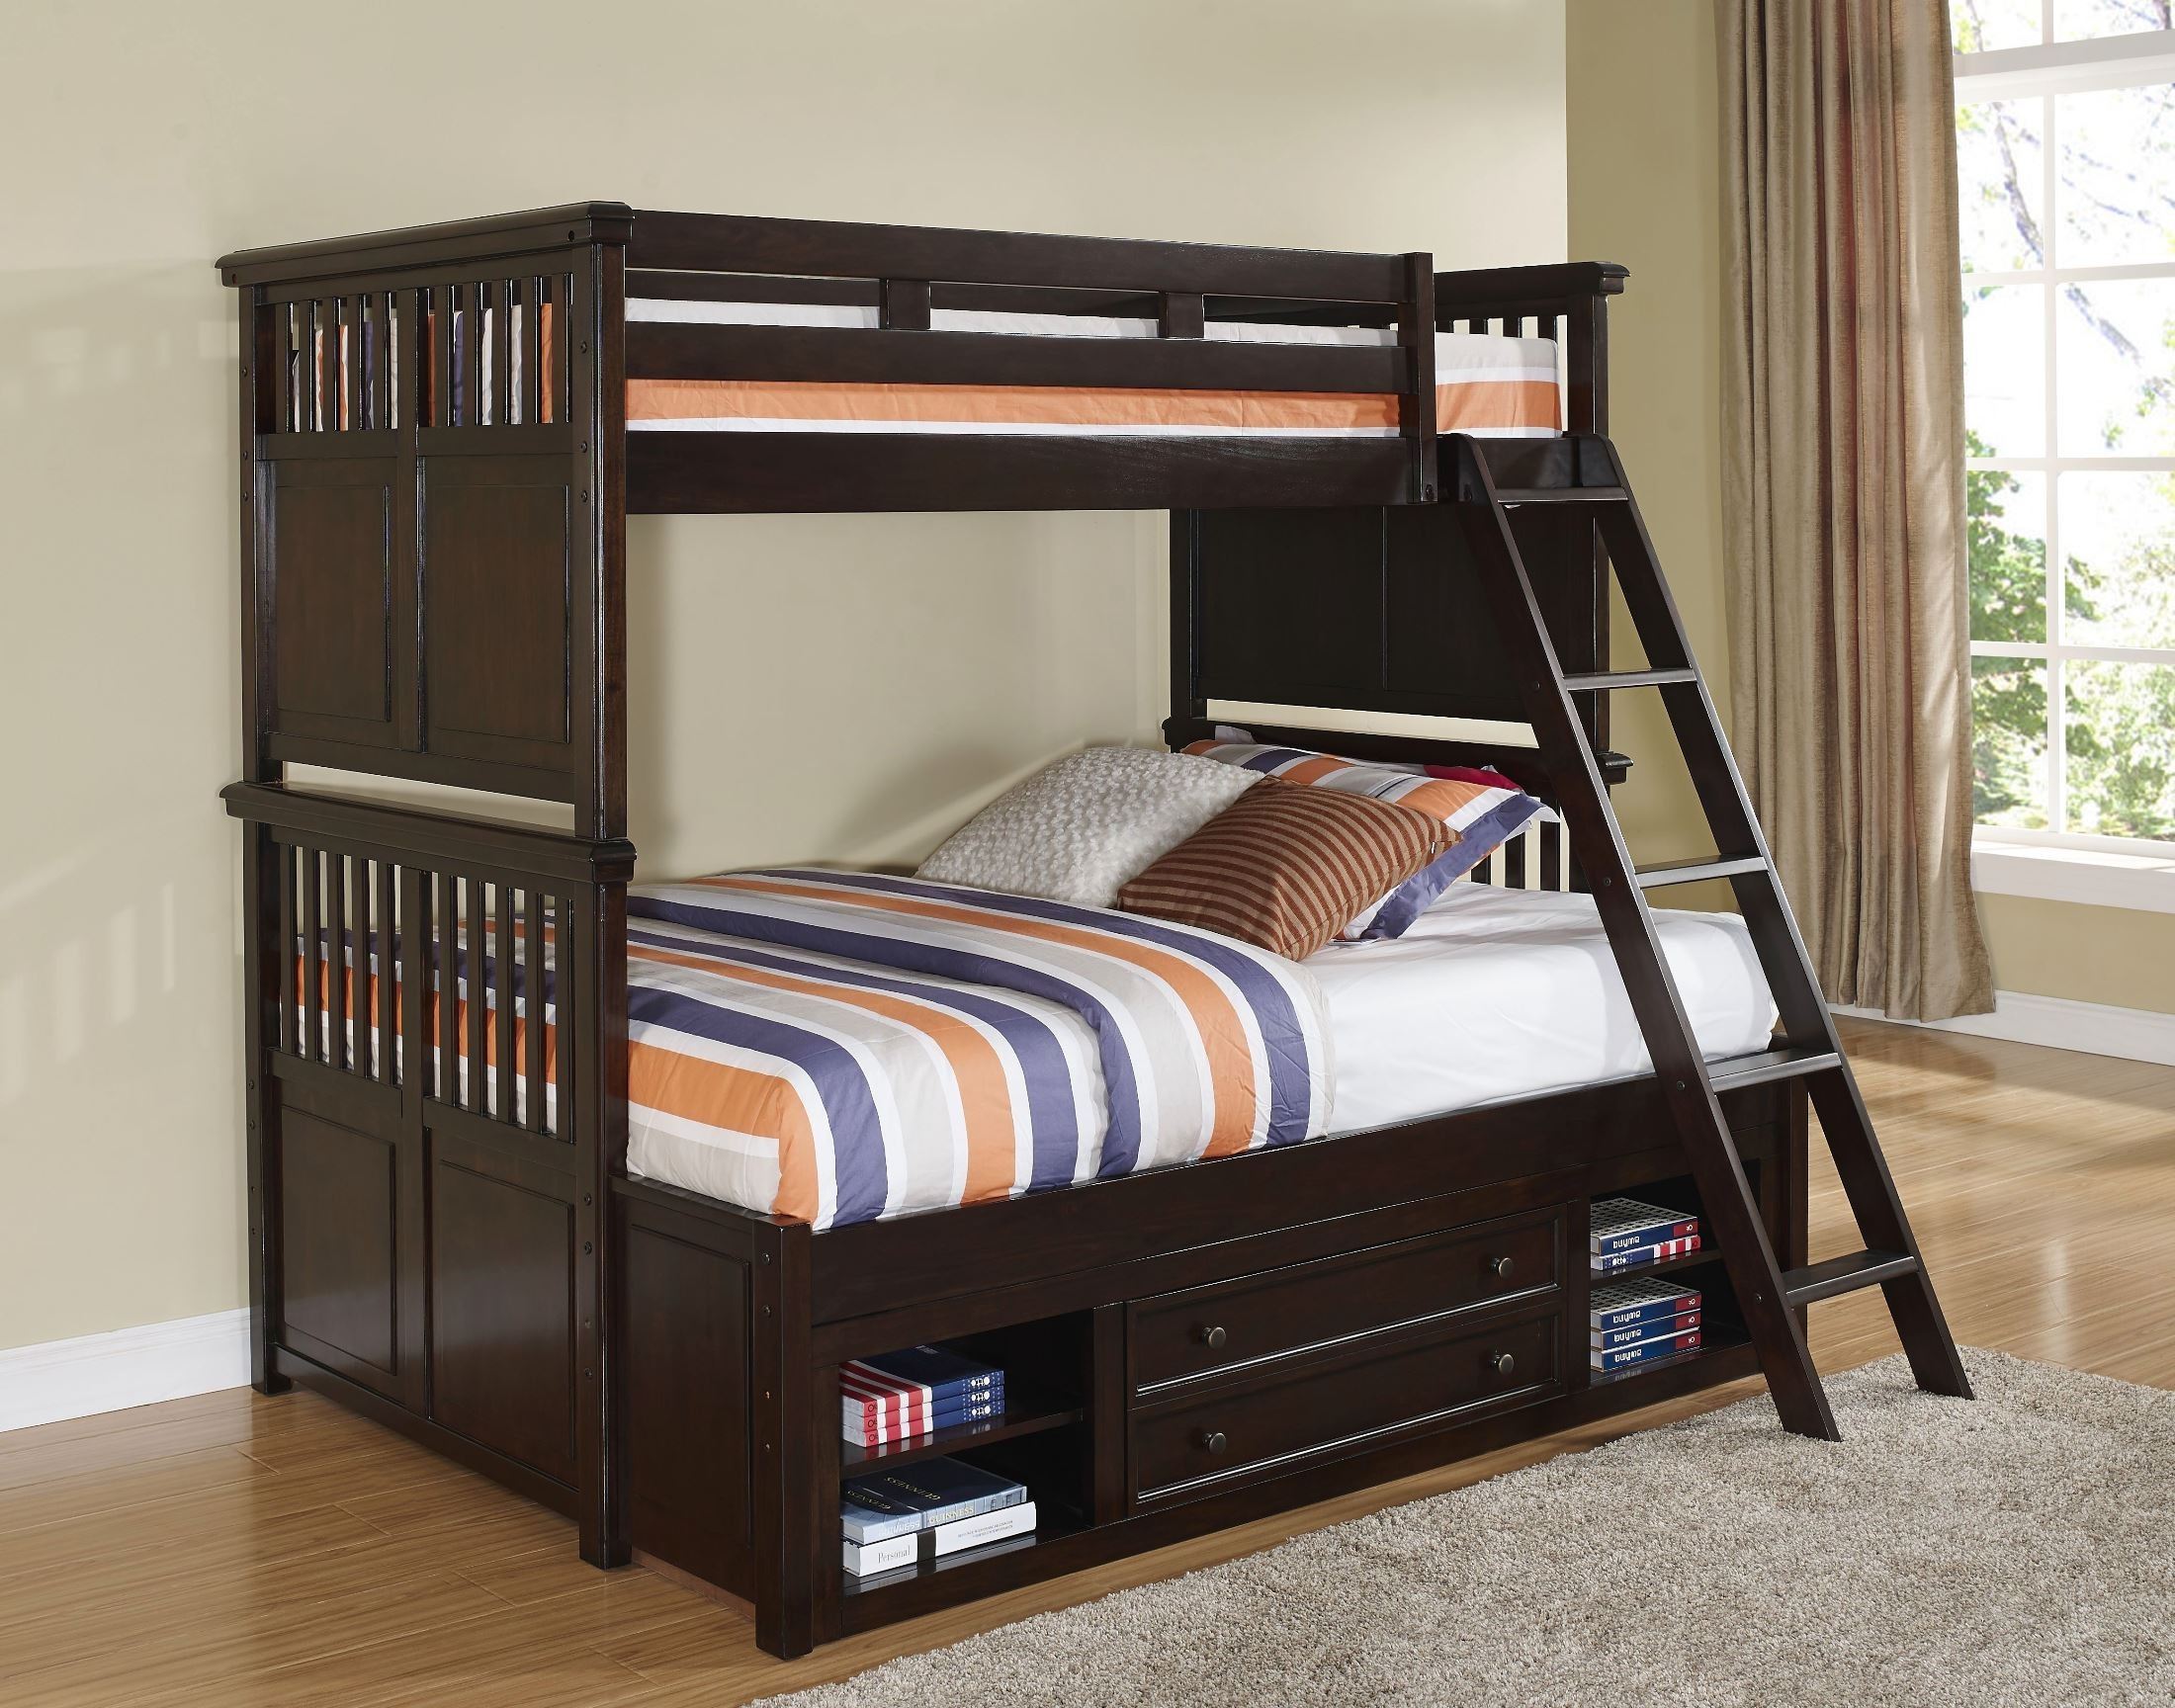 Canyon ridge african chestnut youth storage bunk bedroom set from new classics 05 230 518 538 for Youth storage bedroom furniture